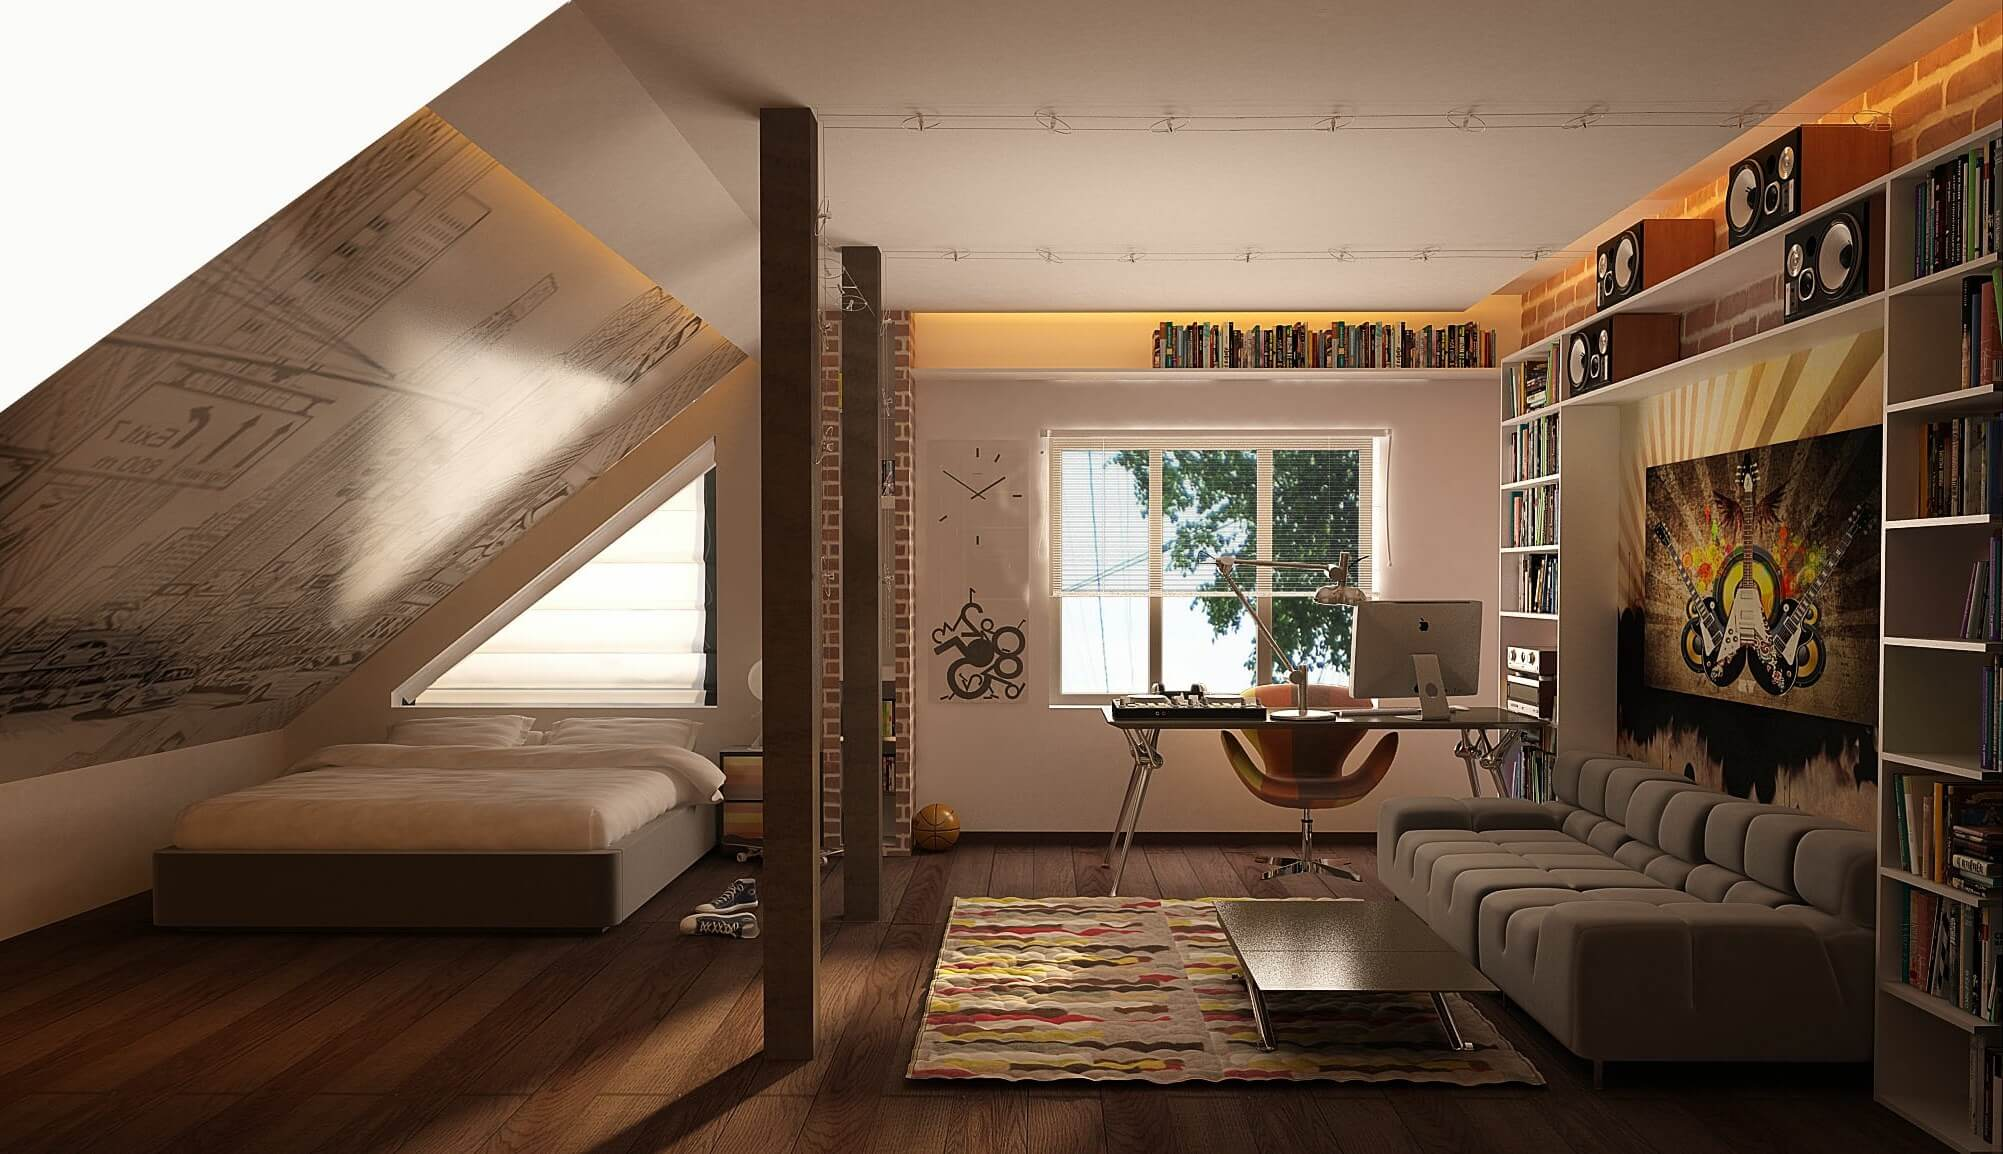 College Dorm Room Loft Ideas For Guys Tumblr